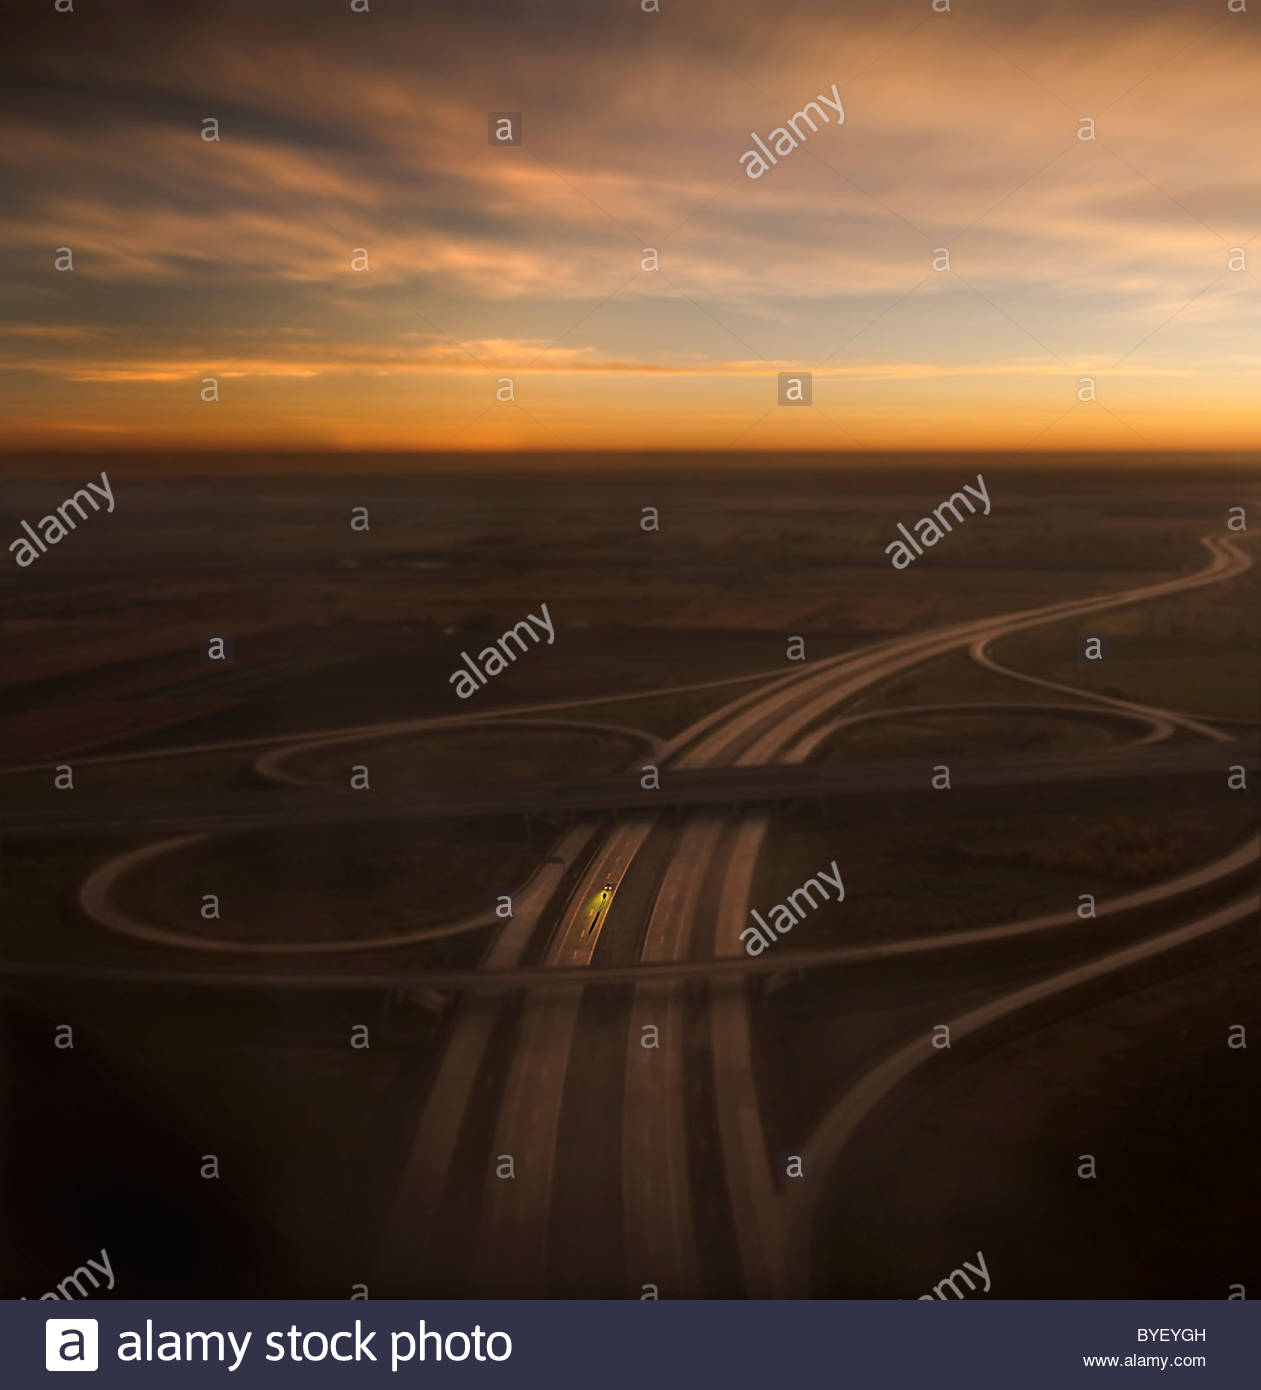 High view over modern road junction with setting sun - Stock Image